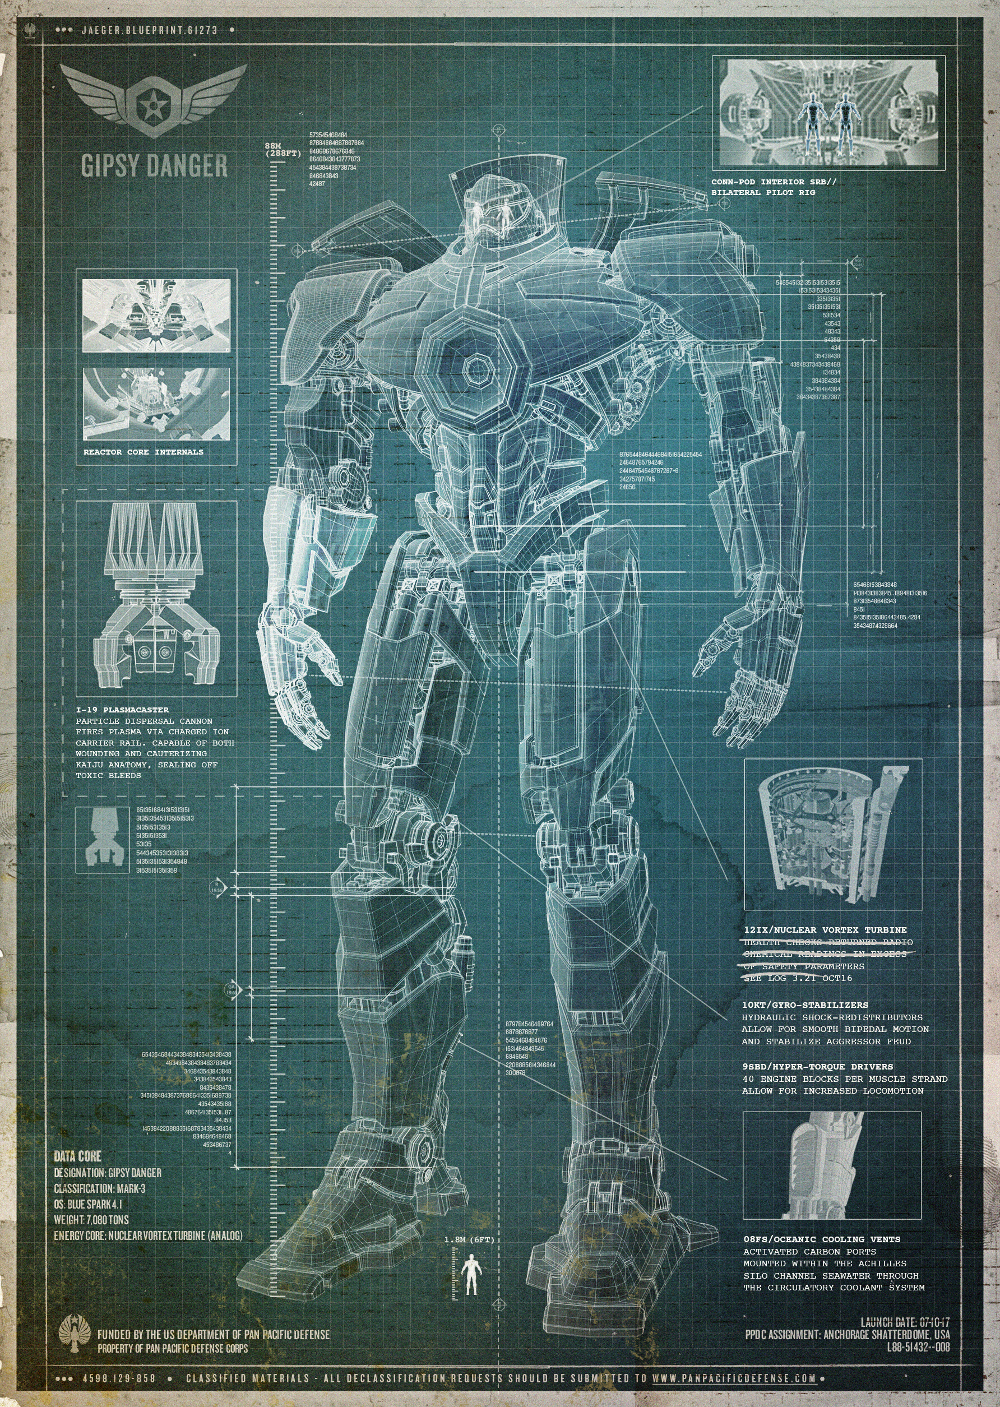 Gipsy danger jaeger pacific rim wiki fandom powered by wikia gipsy danger jaeger malvernweather Images